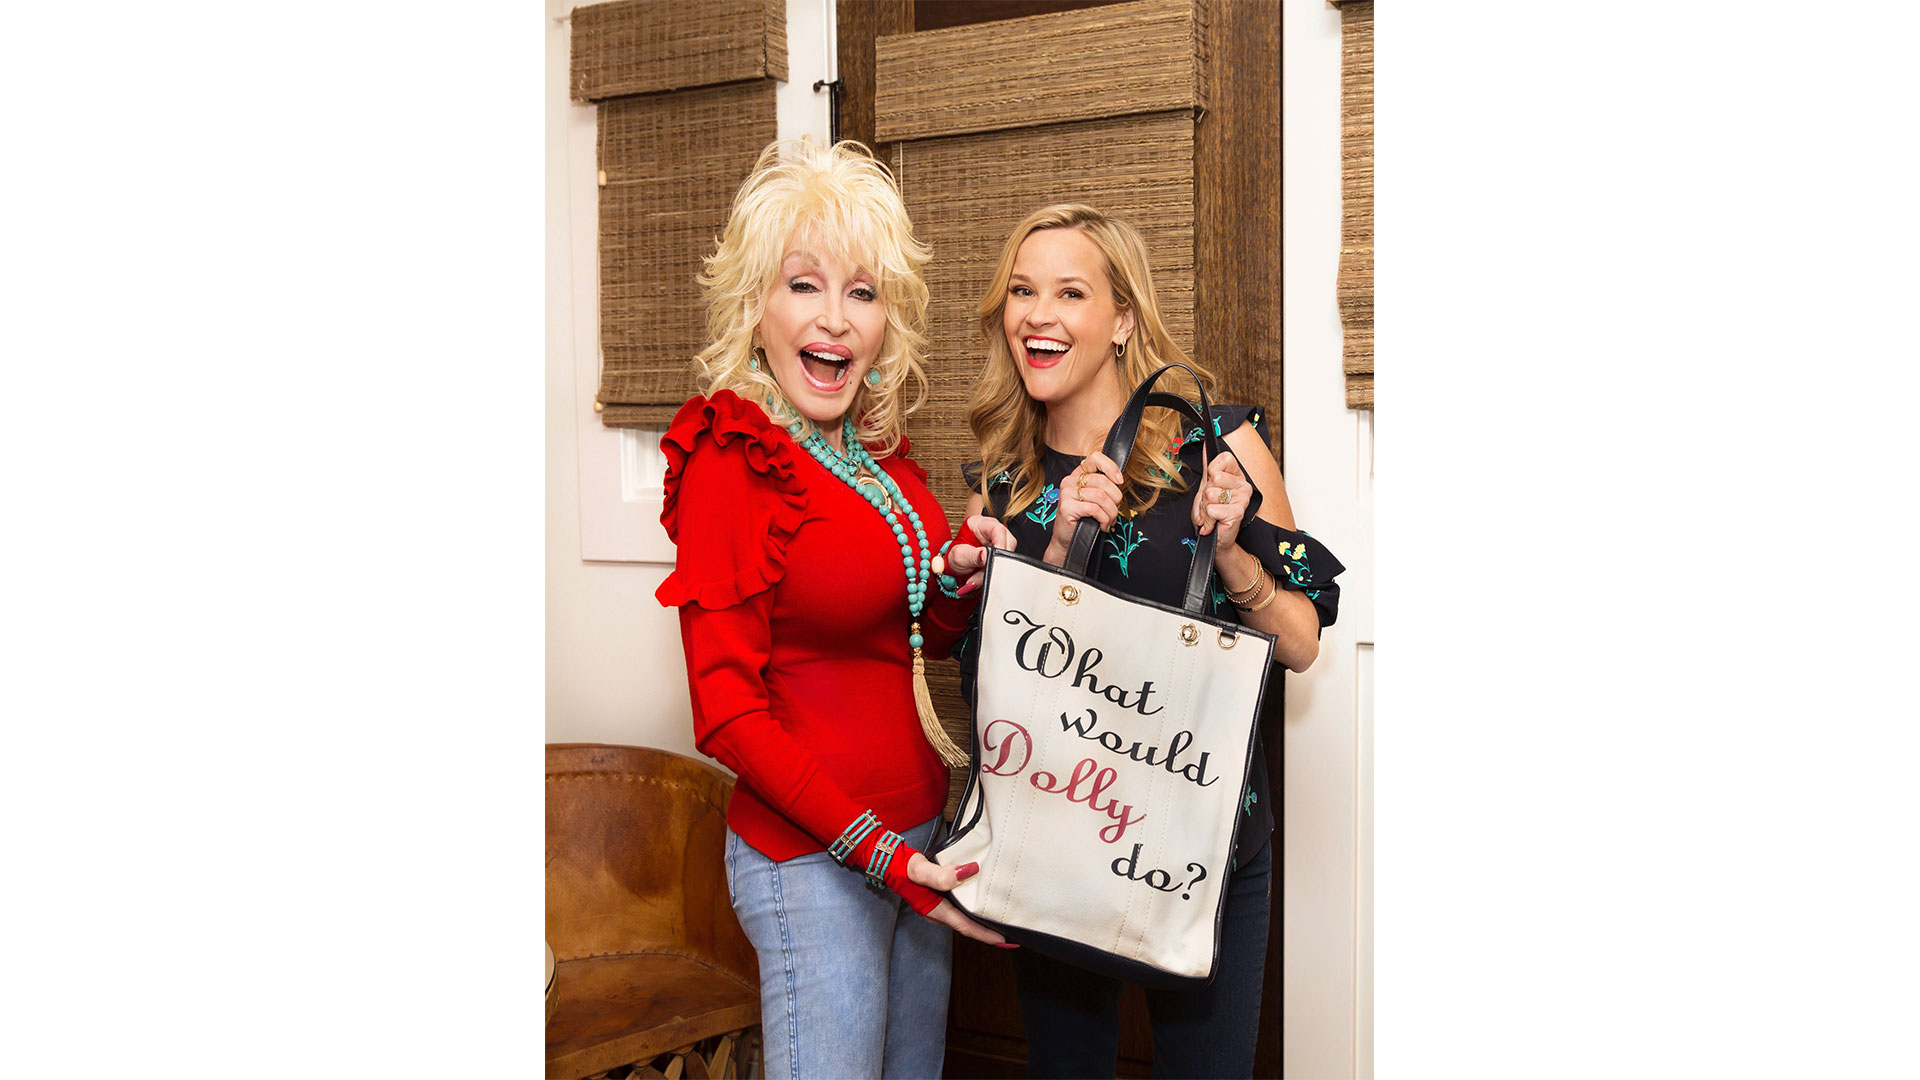 Dolly Parton and Reese Witherspoon